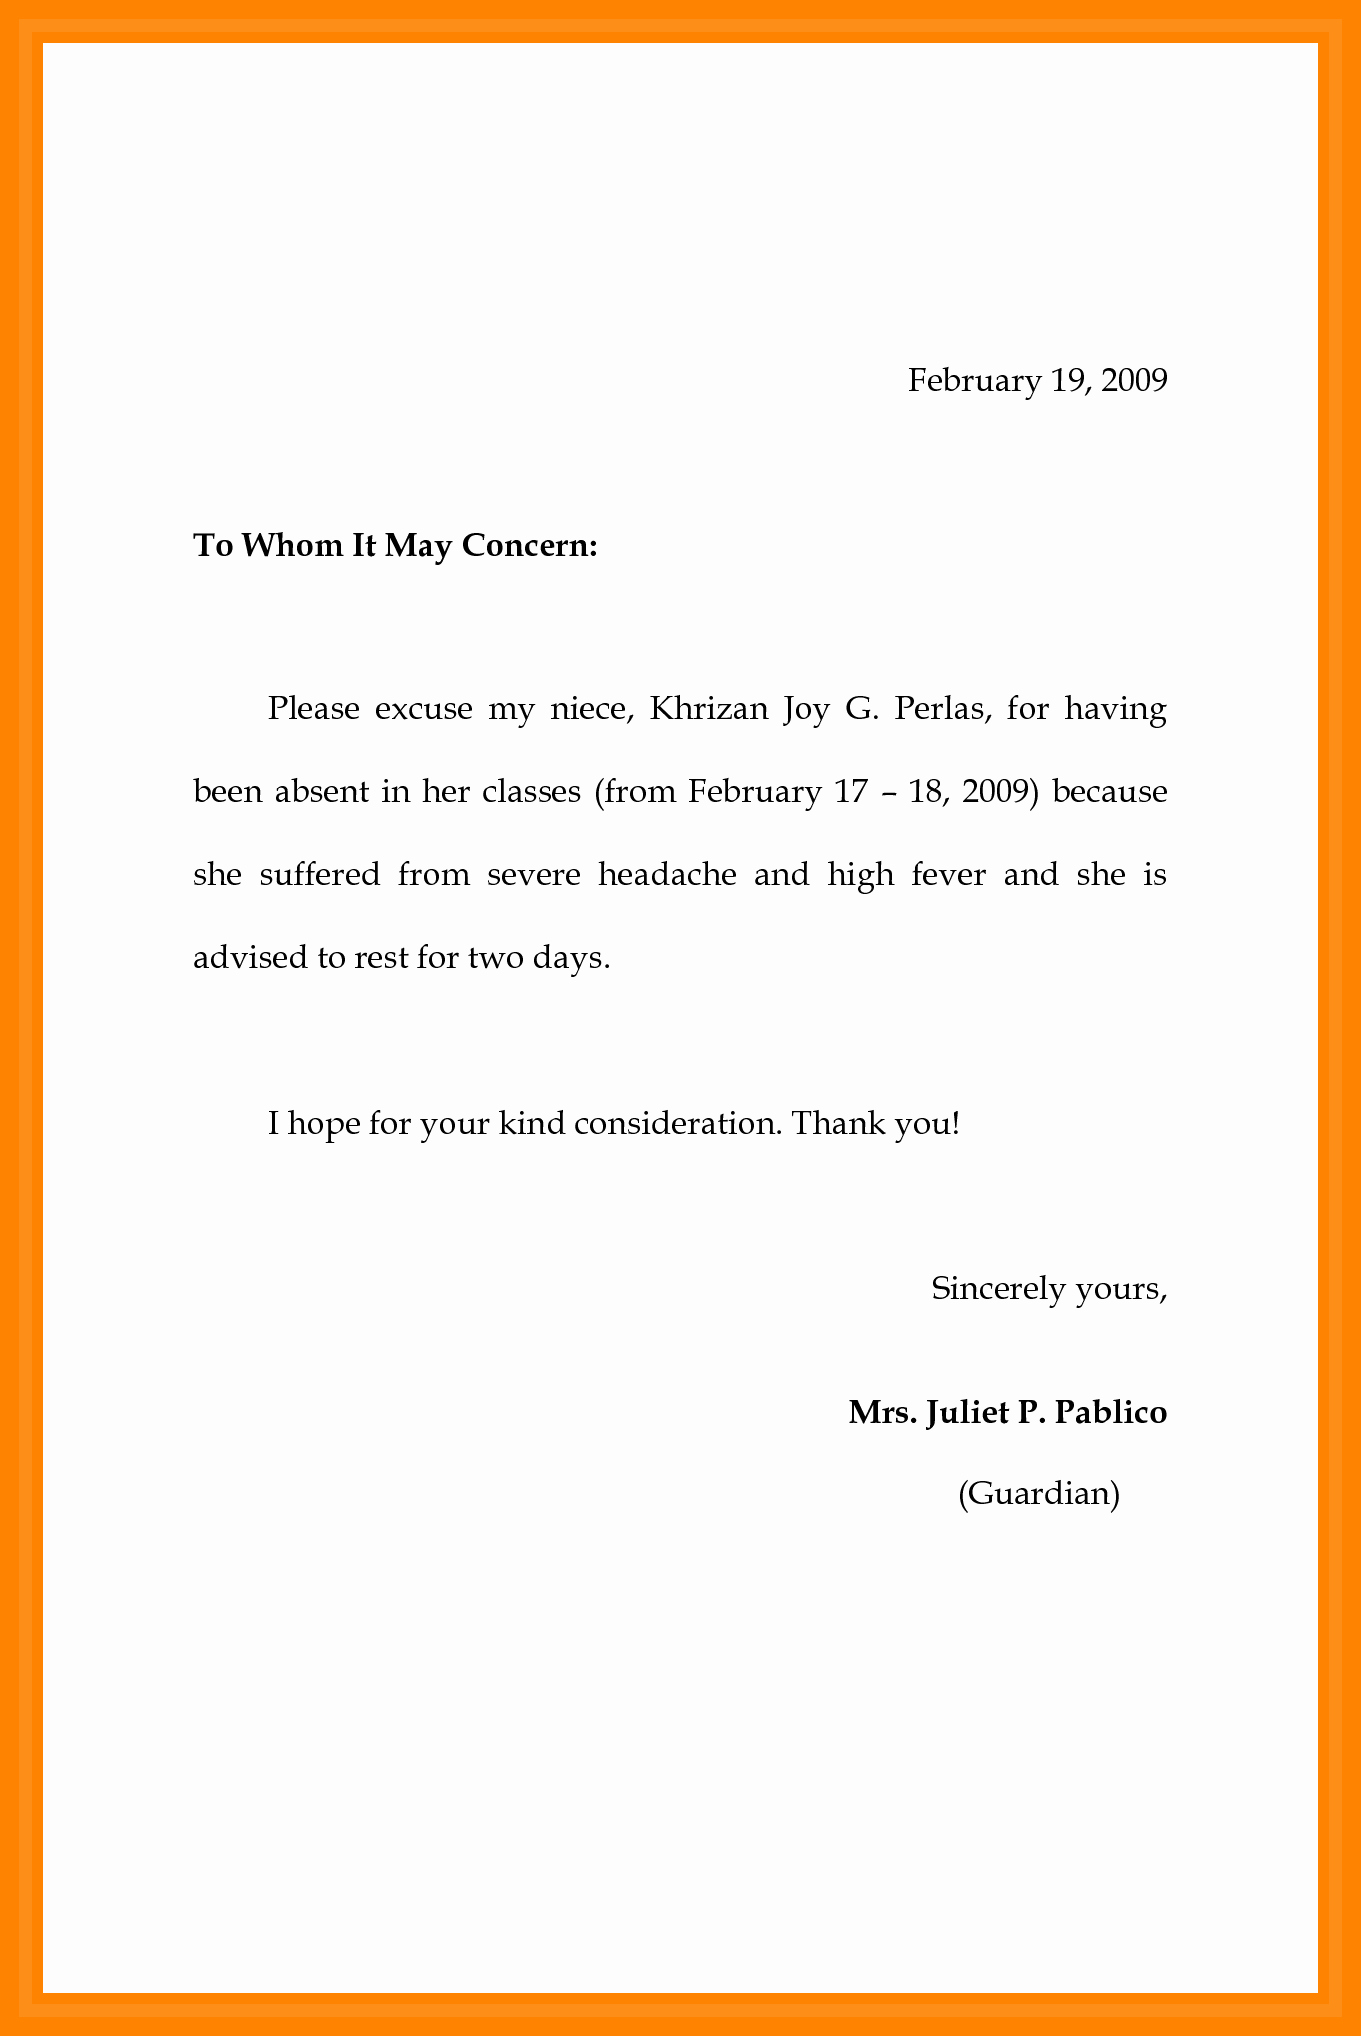 Excused Absence Letter for School Best Of 7 Example Of Absence Letter